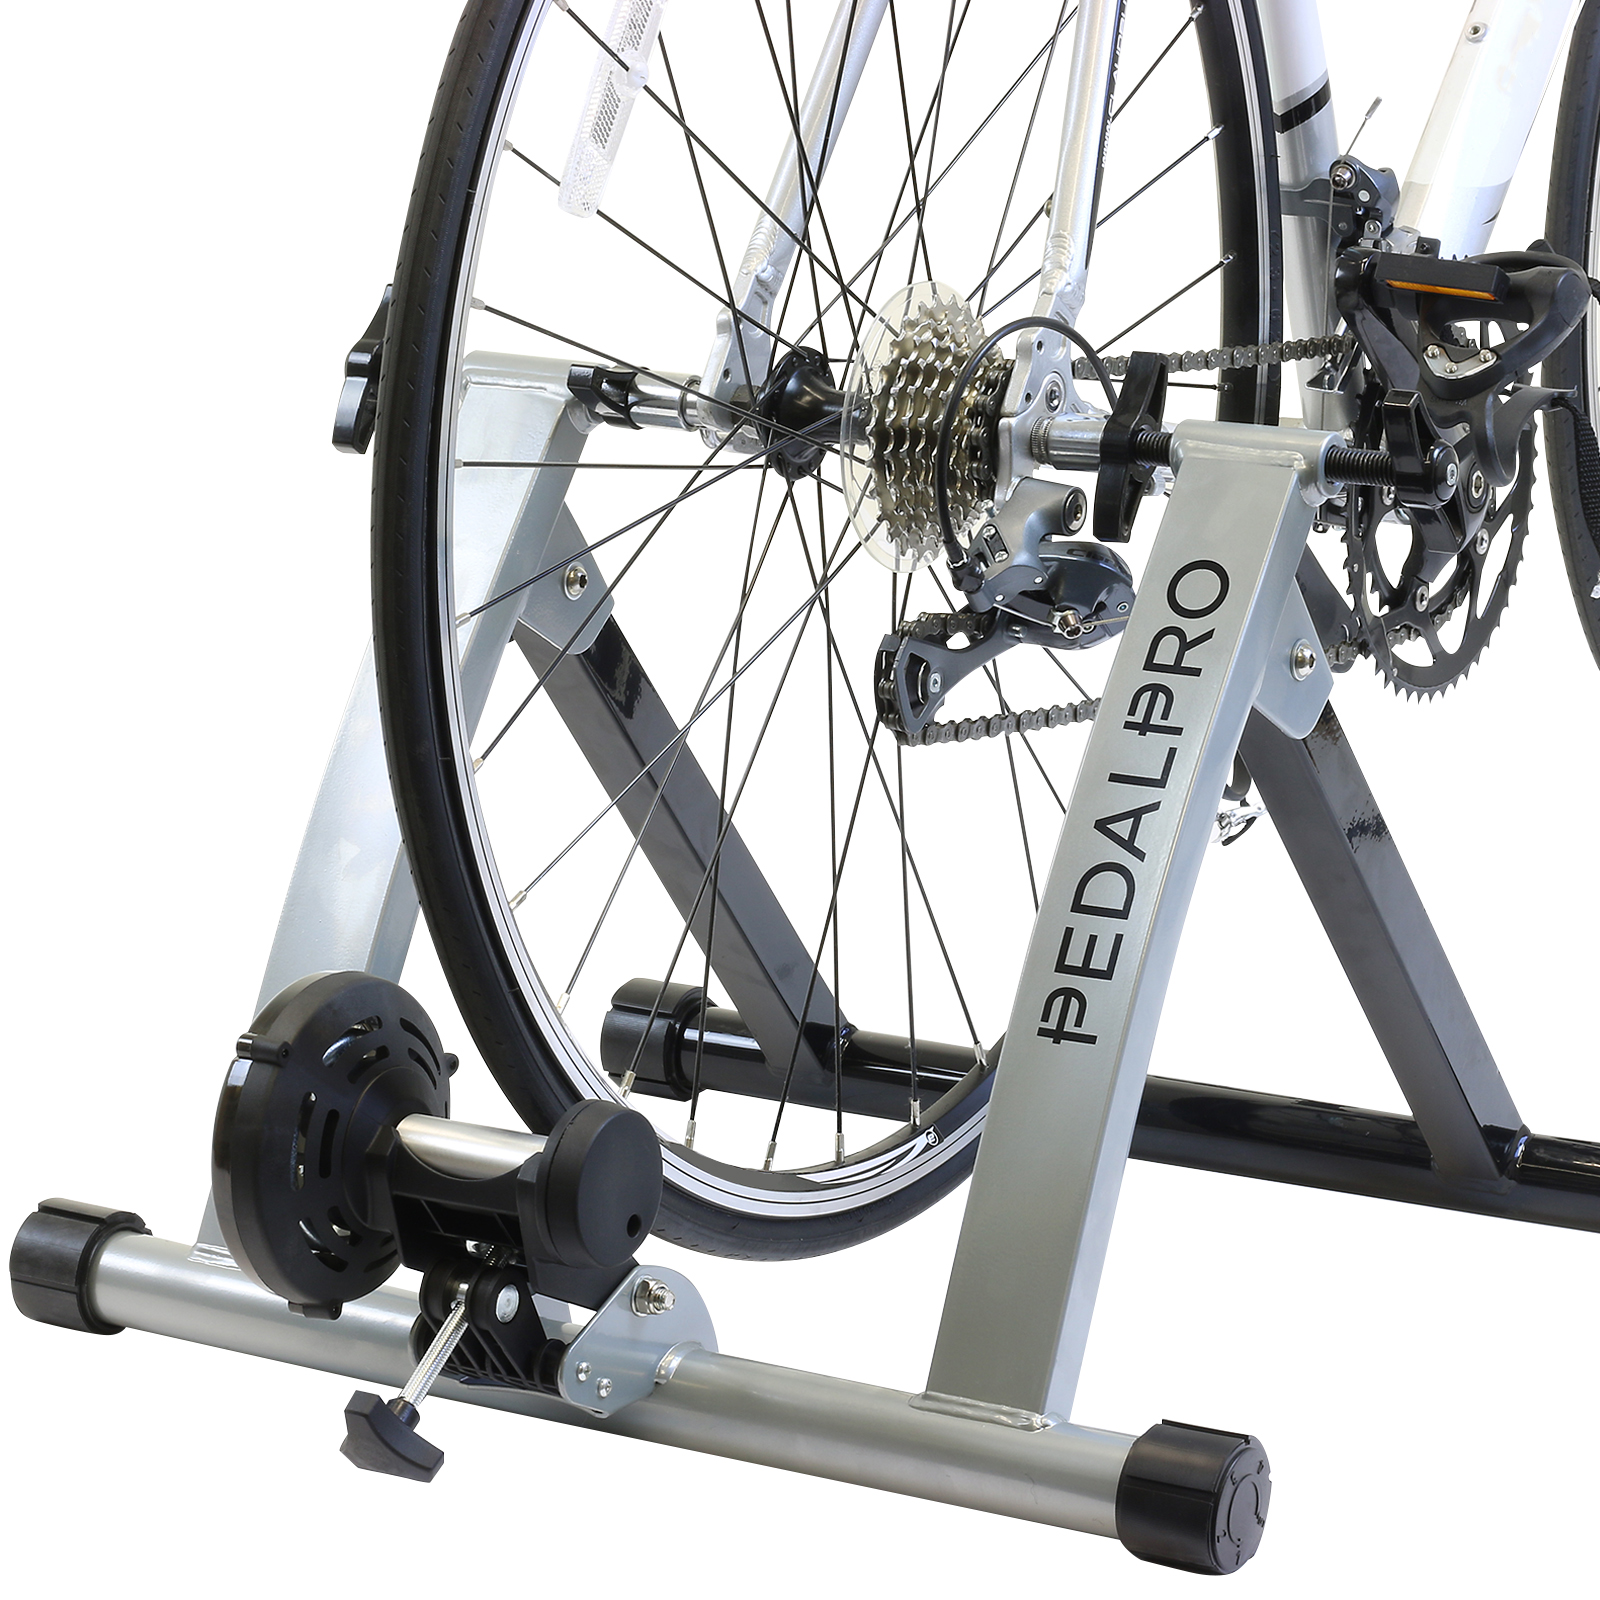 Pedalpro Turbo Trainer Indoor Folding Exercise Bike For